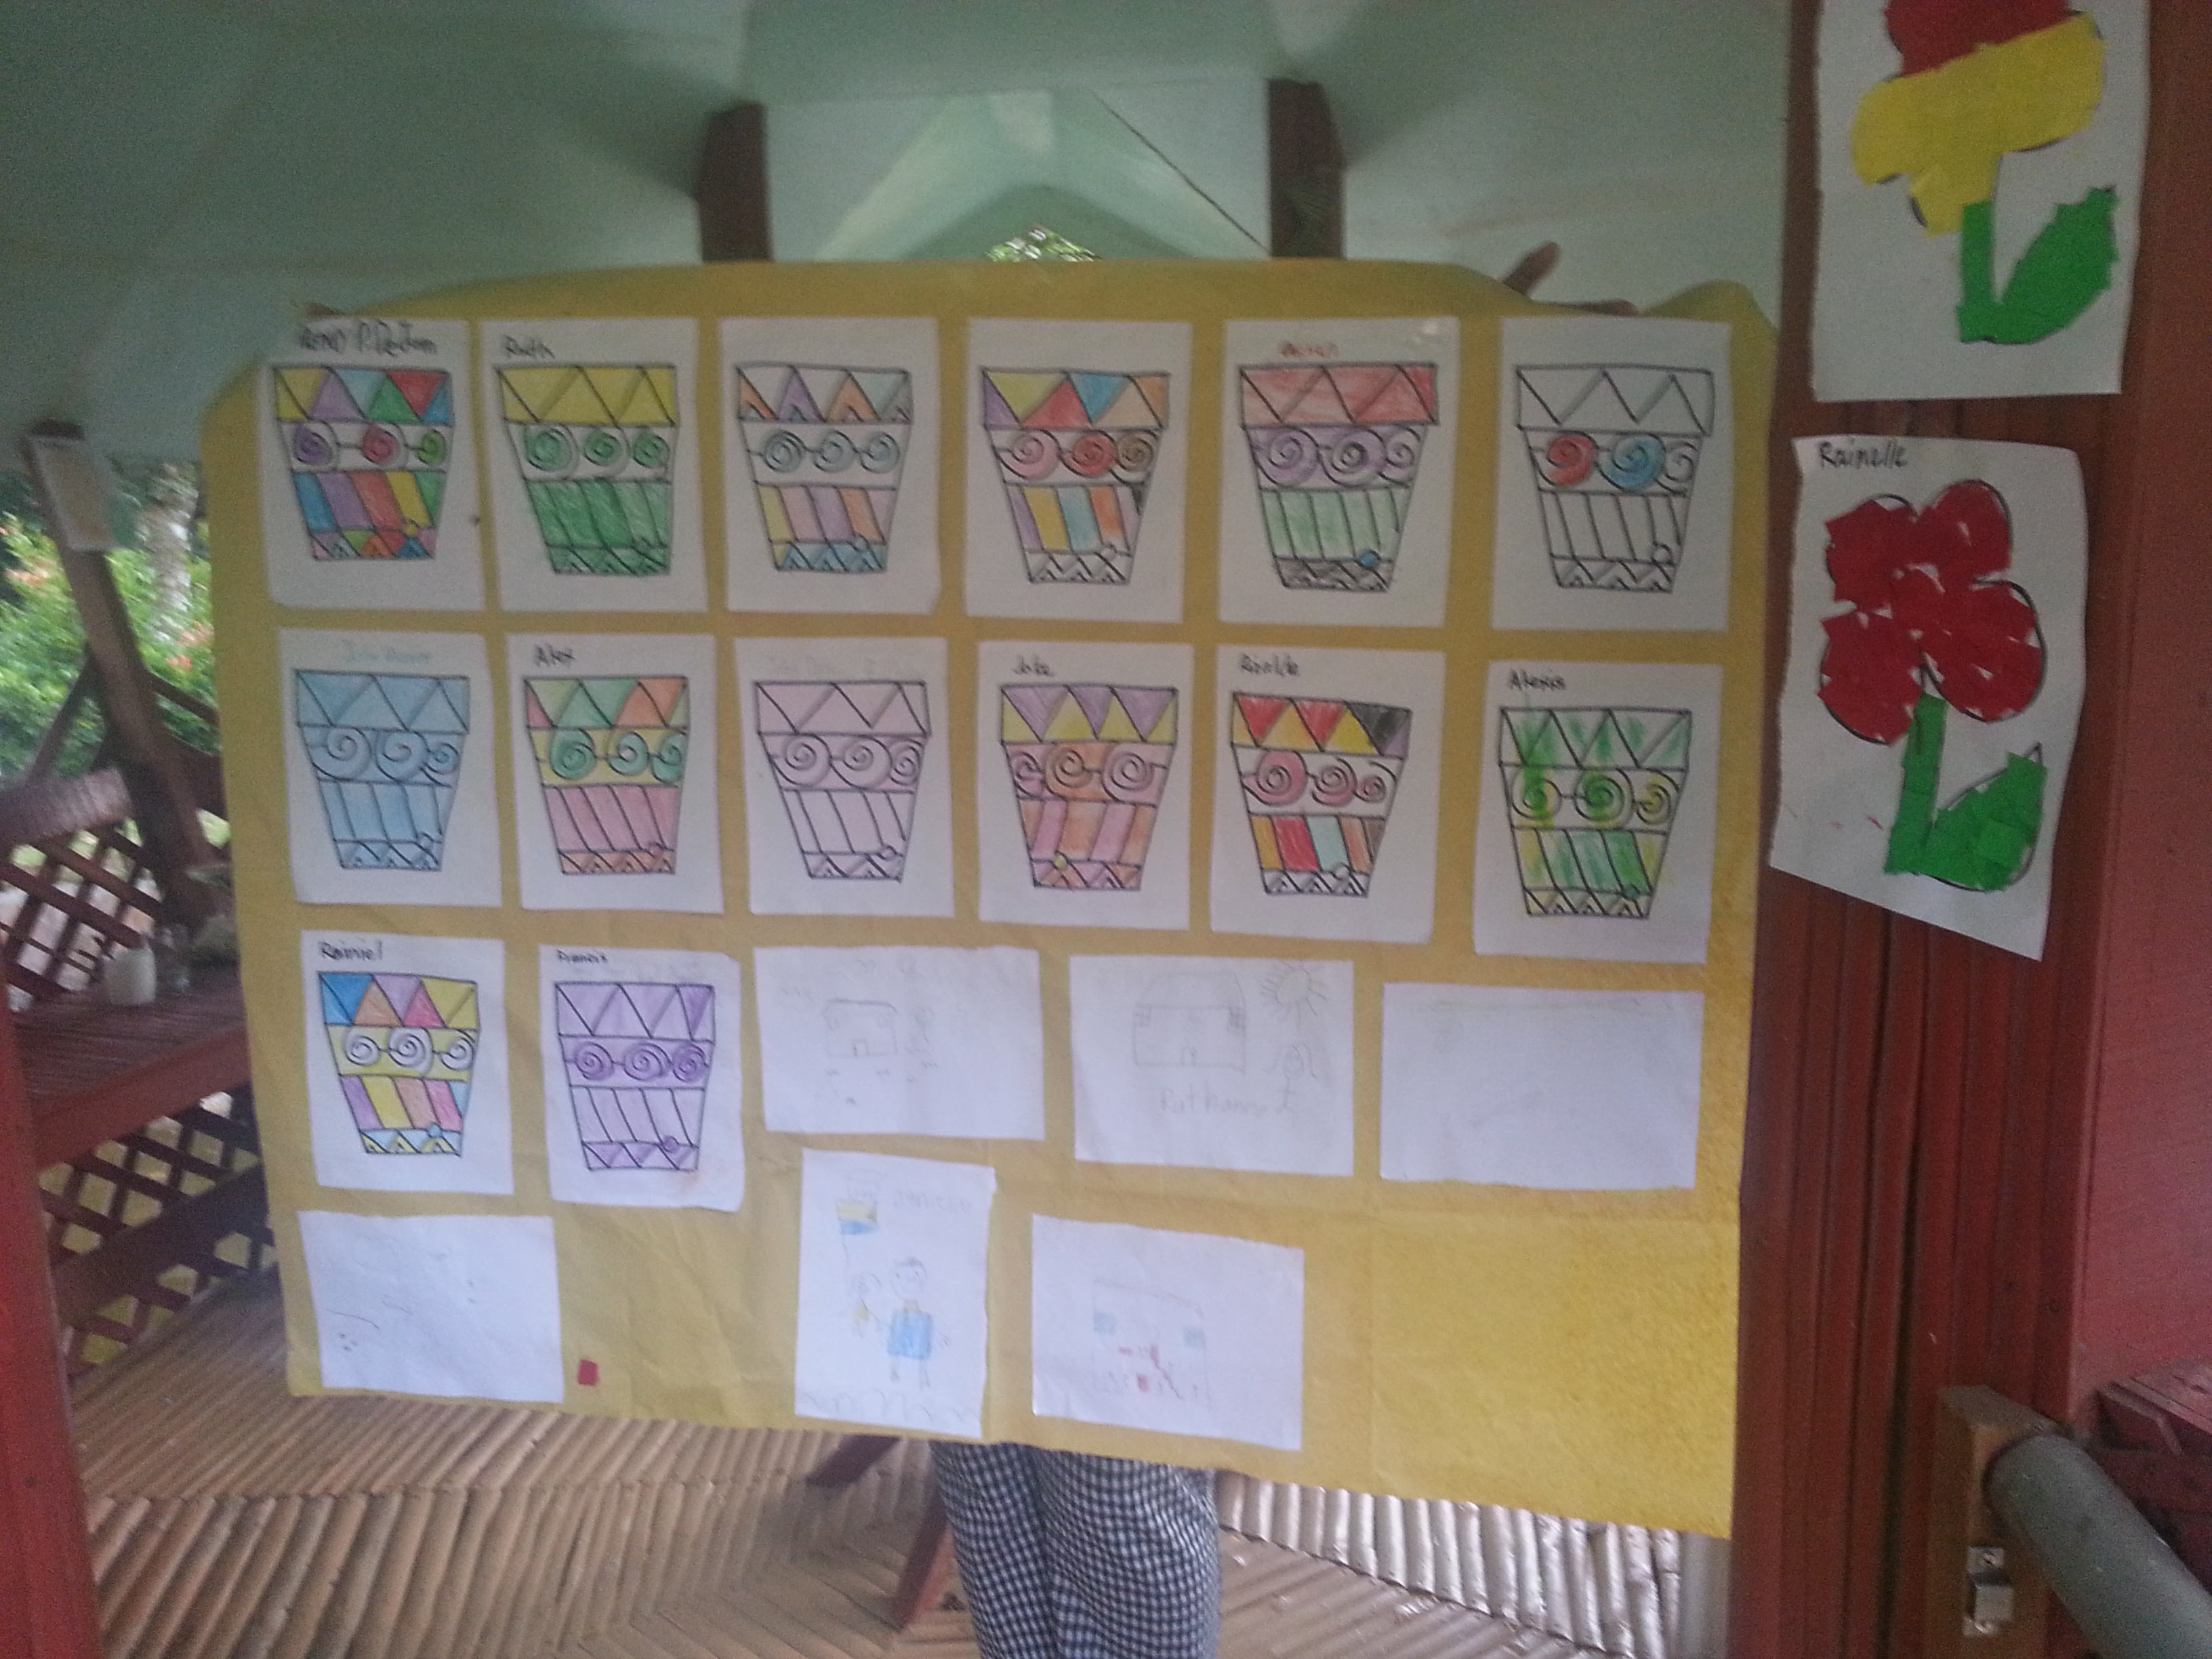 Exhibiting artwork from the kinder-kids at Kaisummer Camp.